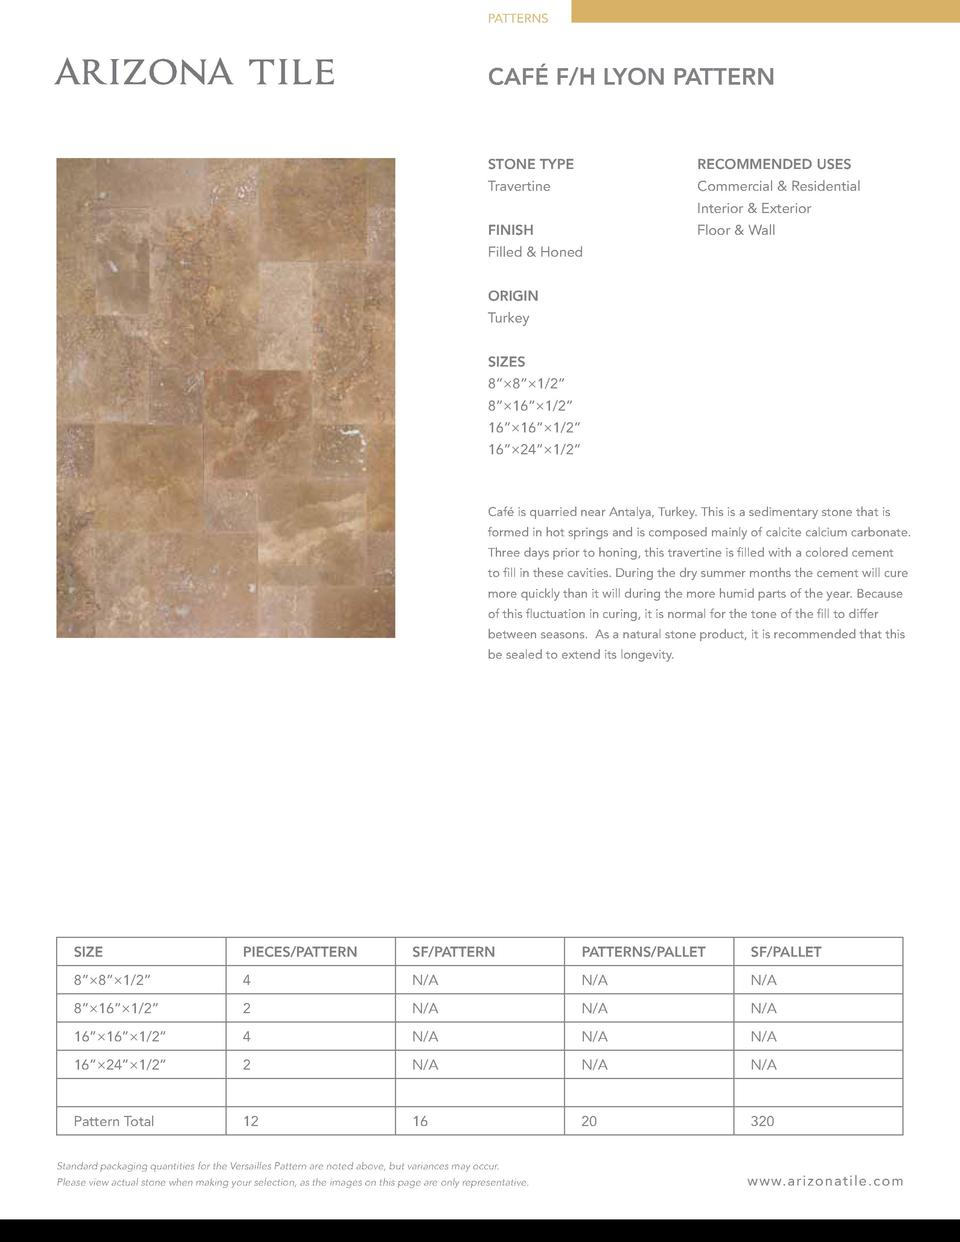 PATTERNS  CAF   F H LYON PATTERN  STONE TYPE  RECOMMENDED USES  Travertine  Commercial   Residential Interior   Exterior  ...